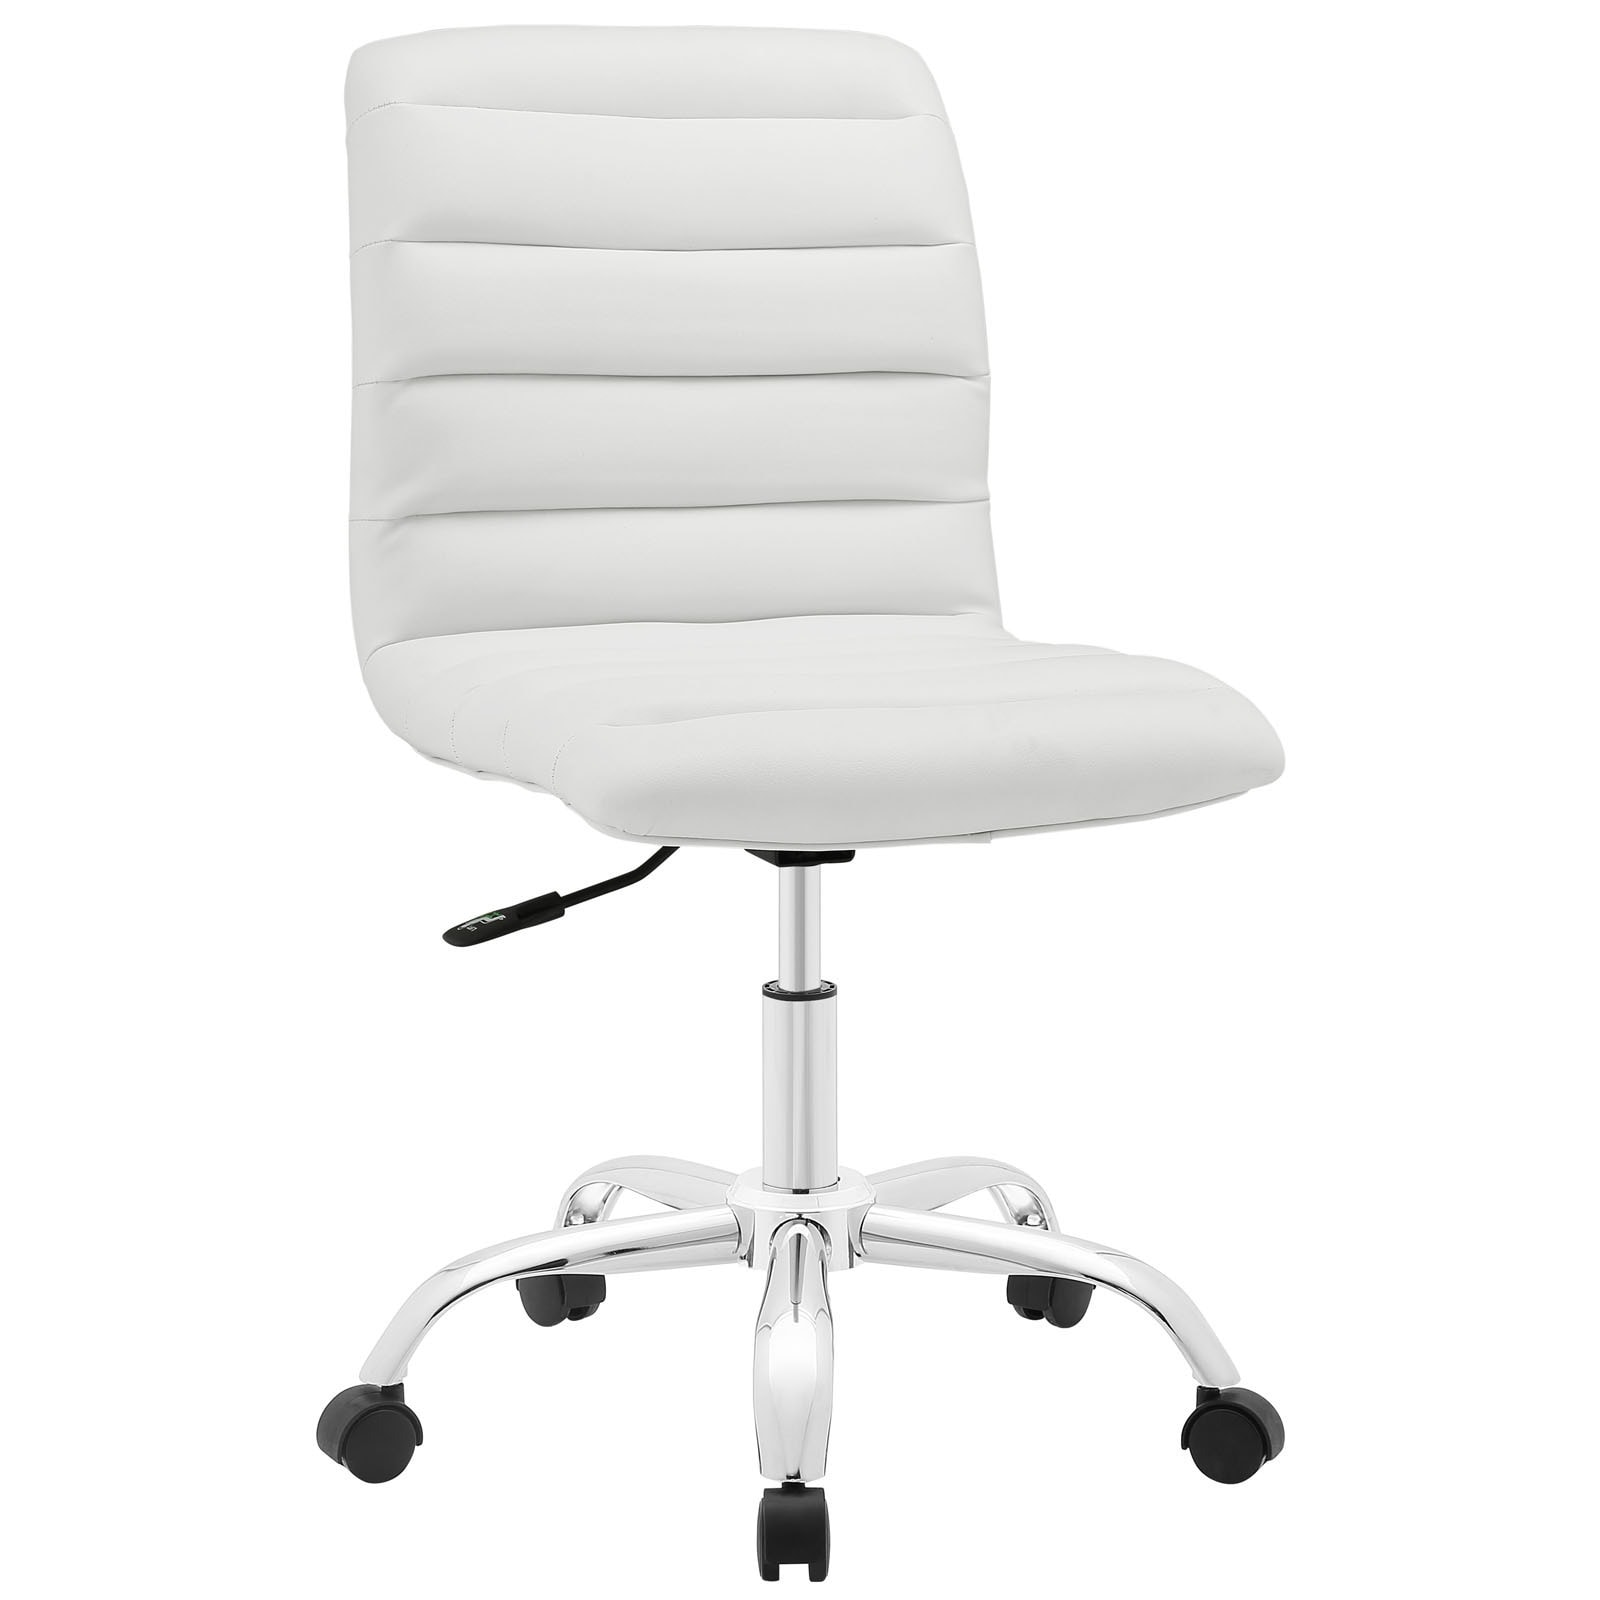 Overstock Office Furniture: Ripple Mid-back Office Chair